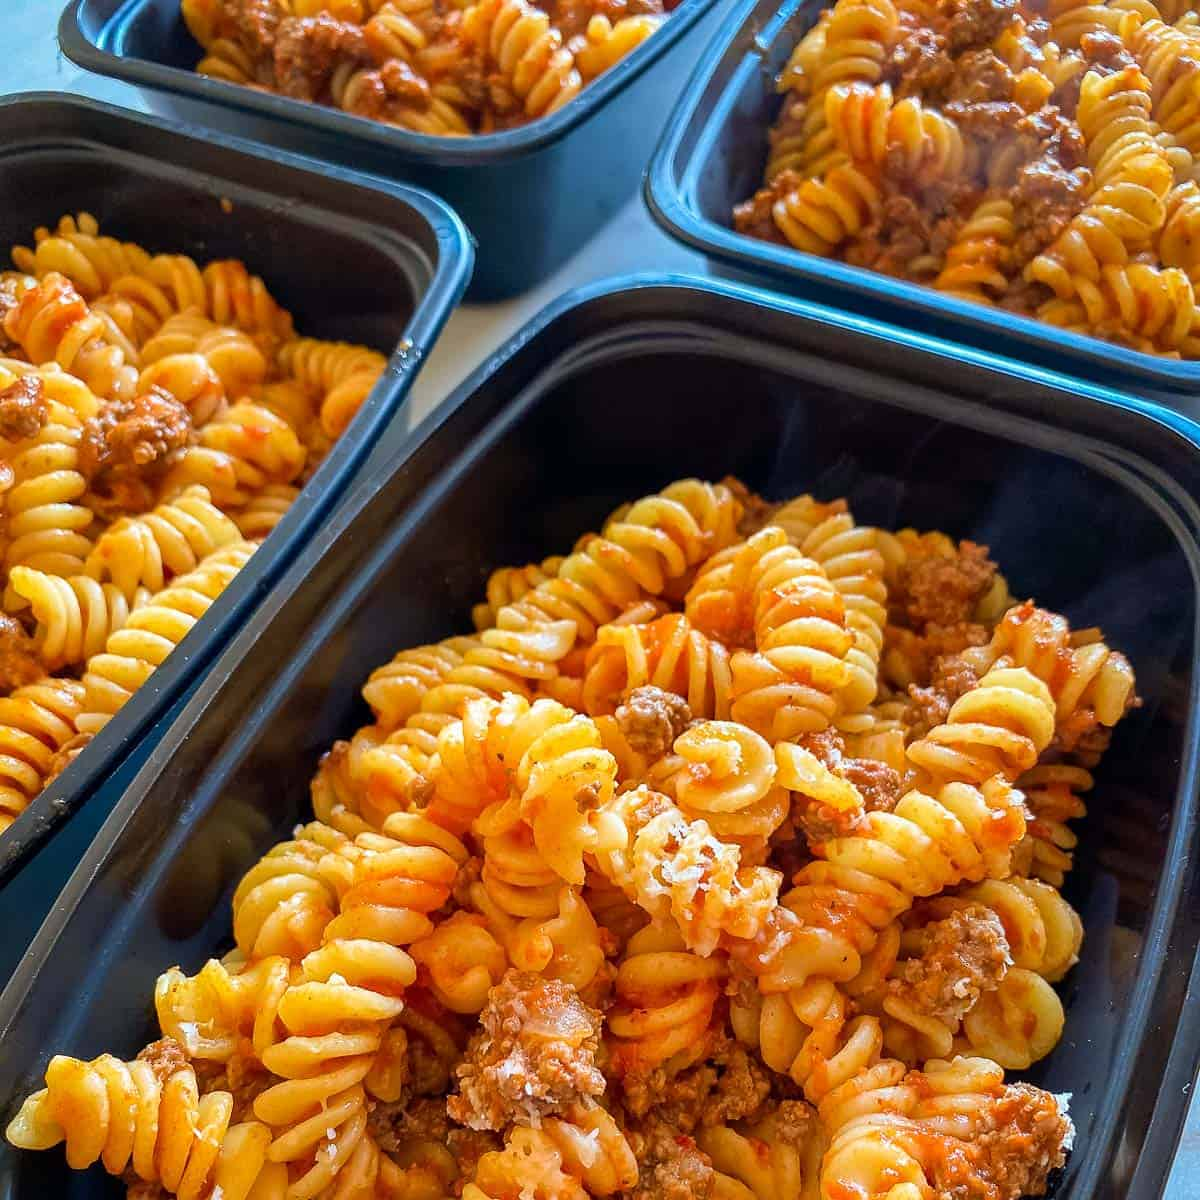 4 partial containers of Bison Pasta made with rotini divided into 4 rectangular black meal prep containers.